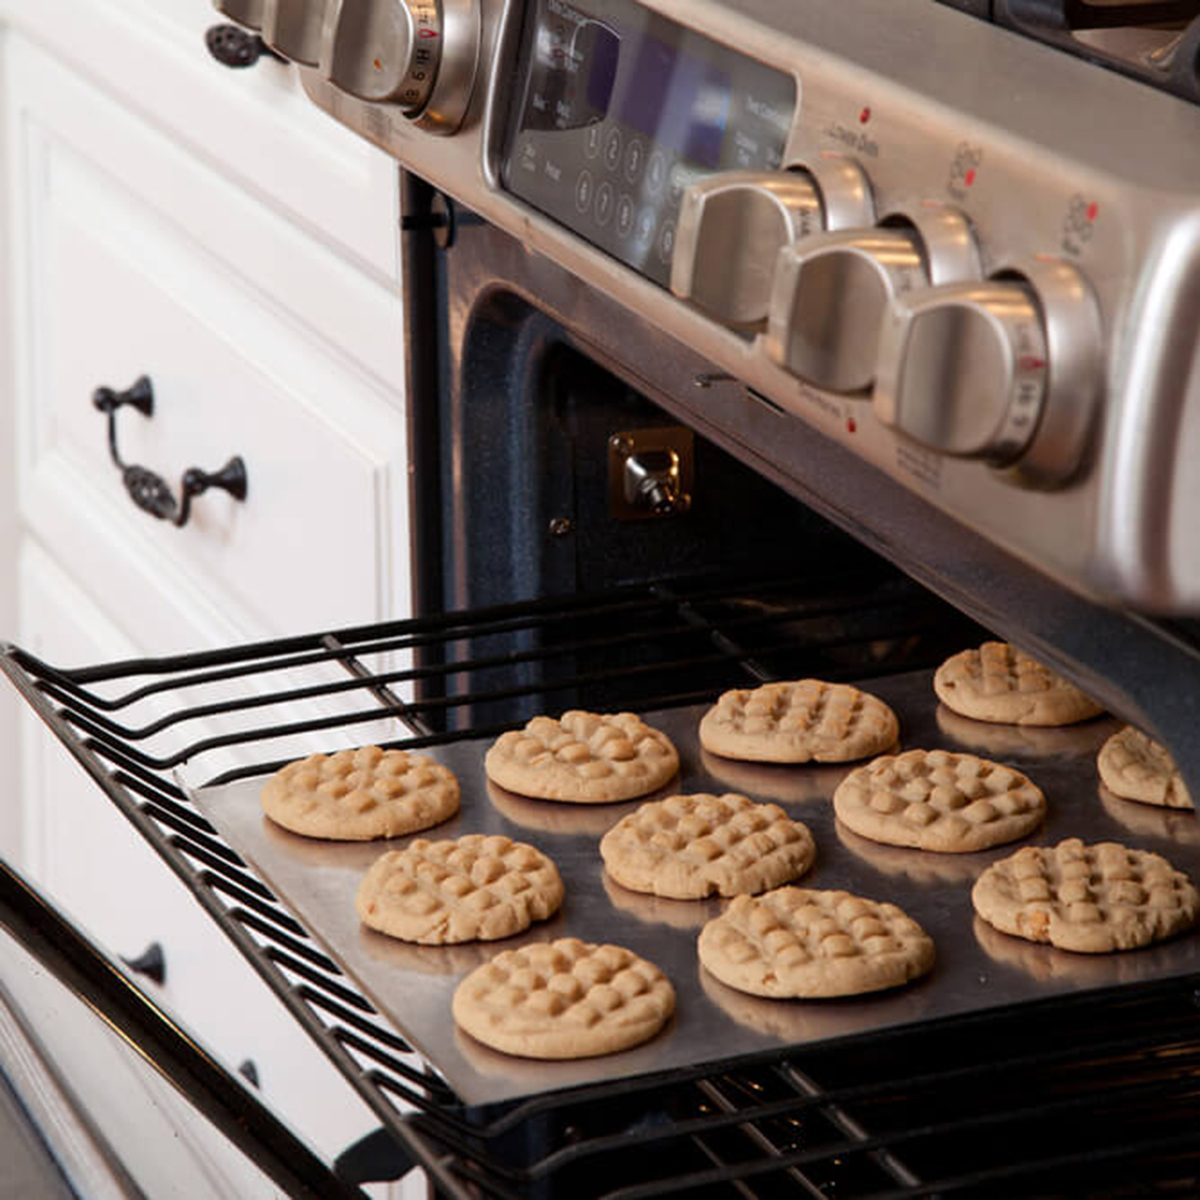 Peanut butter cookies coming out of the oven